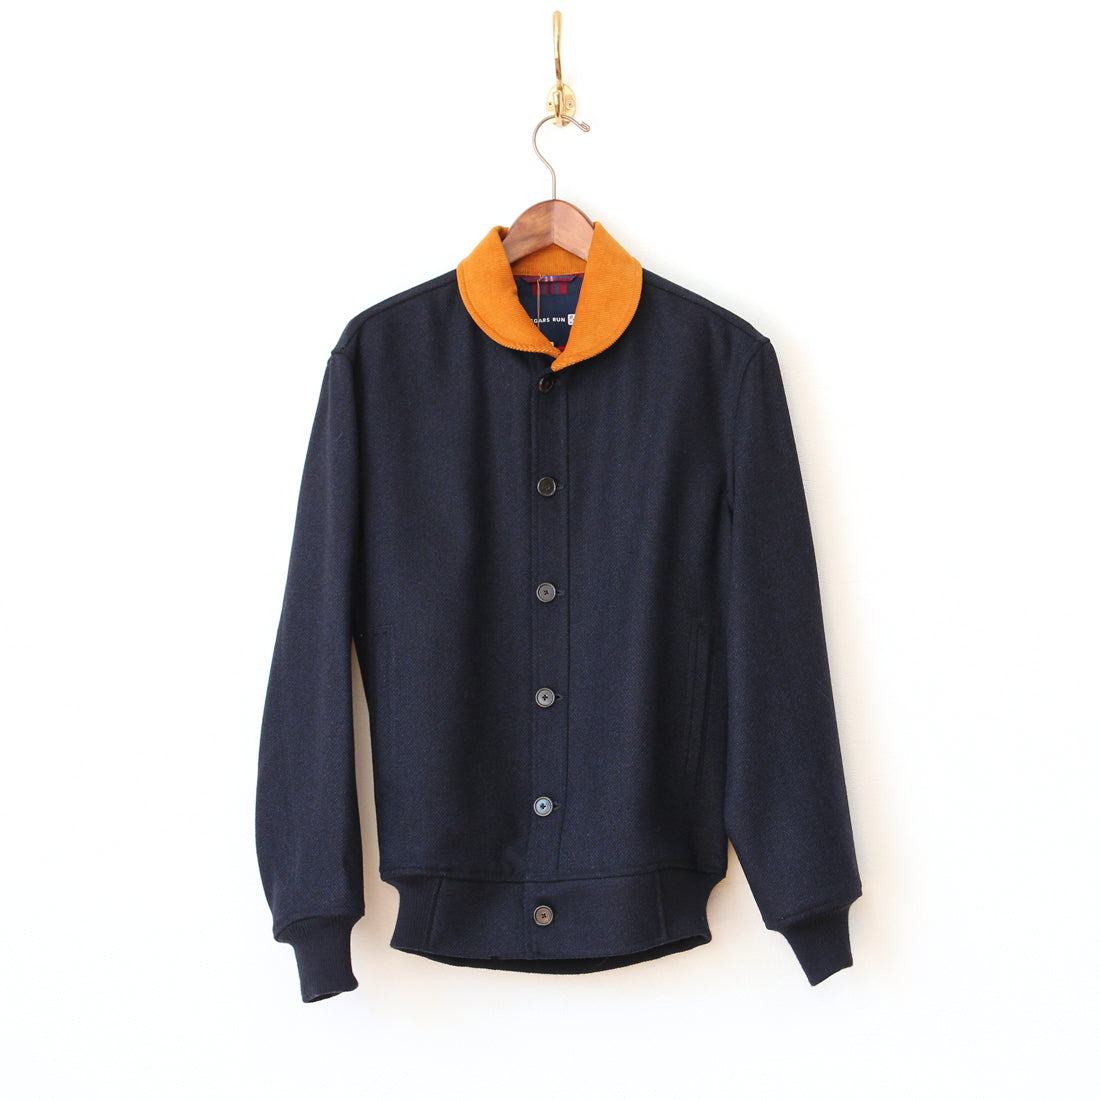 Beggars Run - Corsair Wool Bomber (navy)